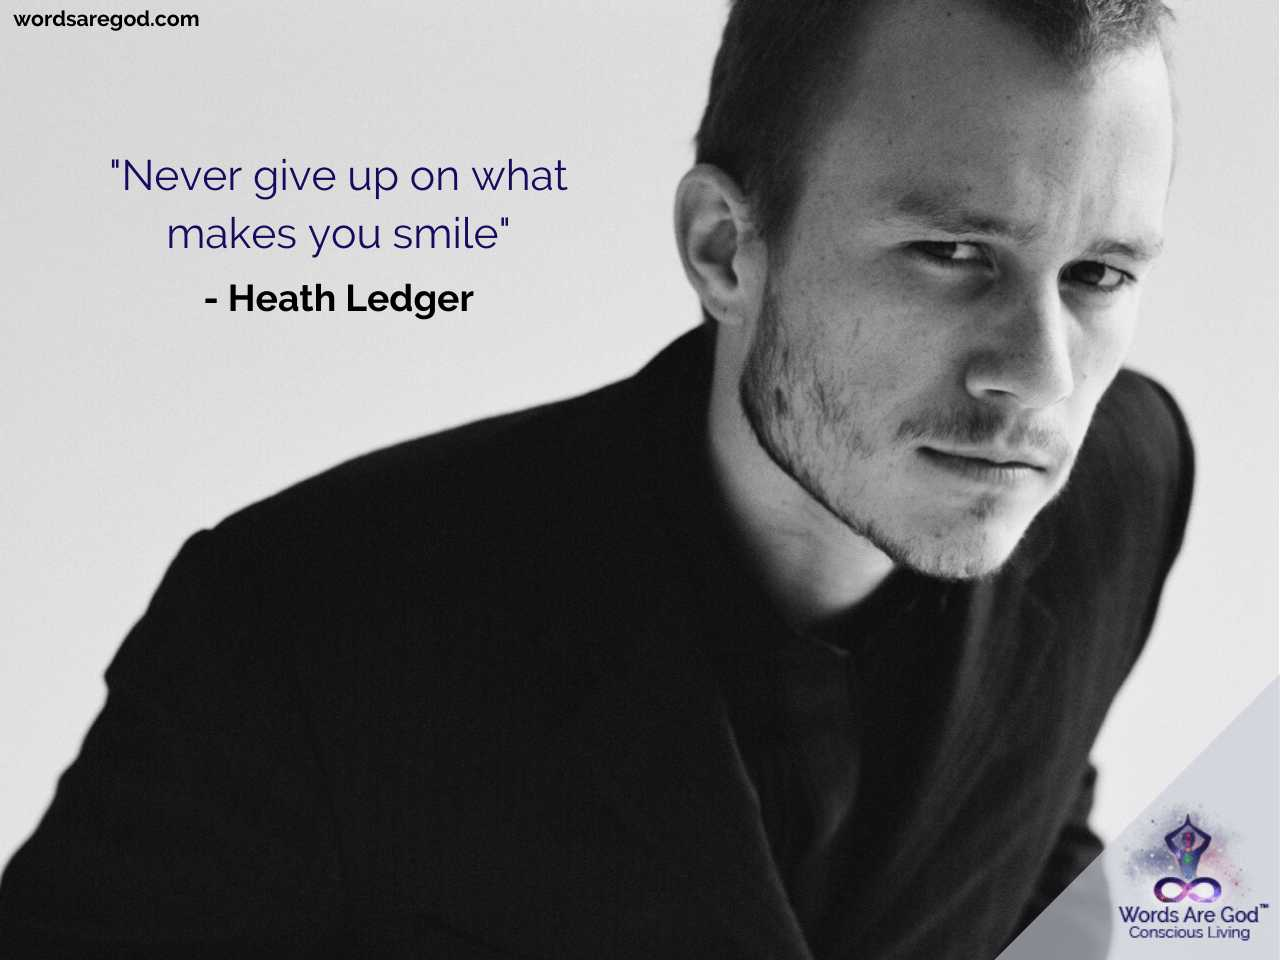 Heath Ledger Inspirational Quotes